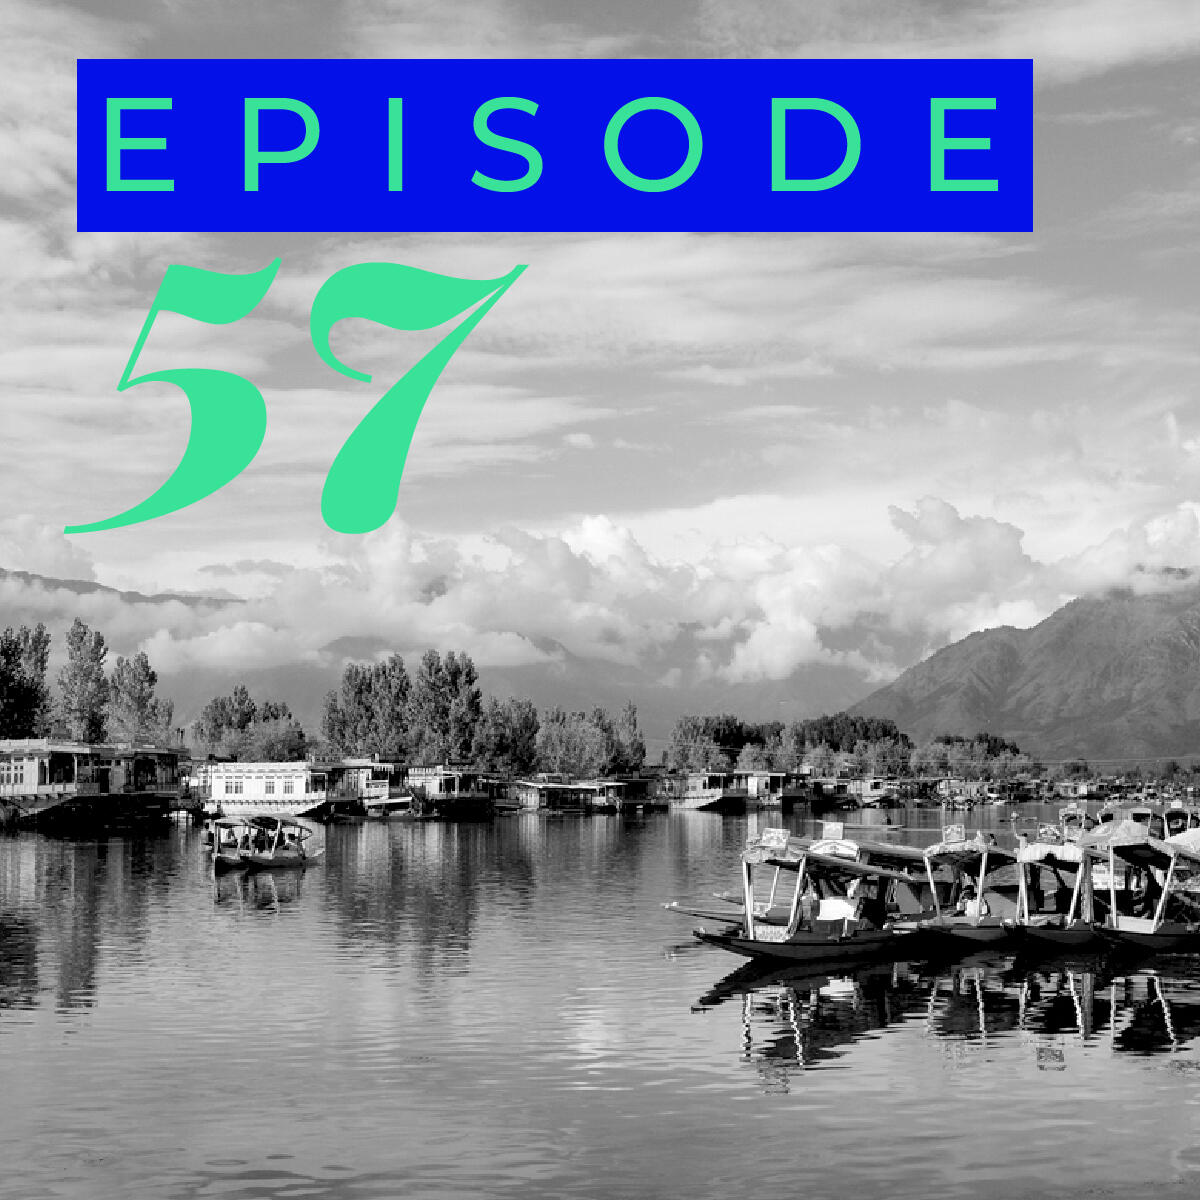 57: Abrogation of Article 370 in Jammu & Kashmir